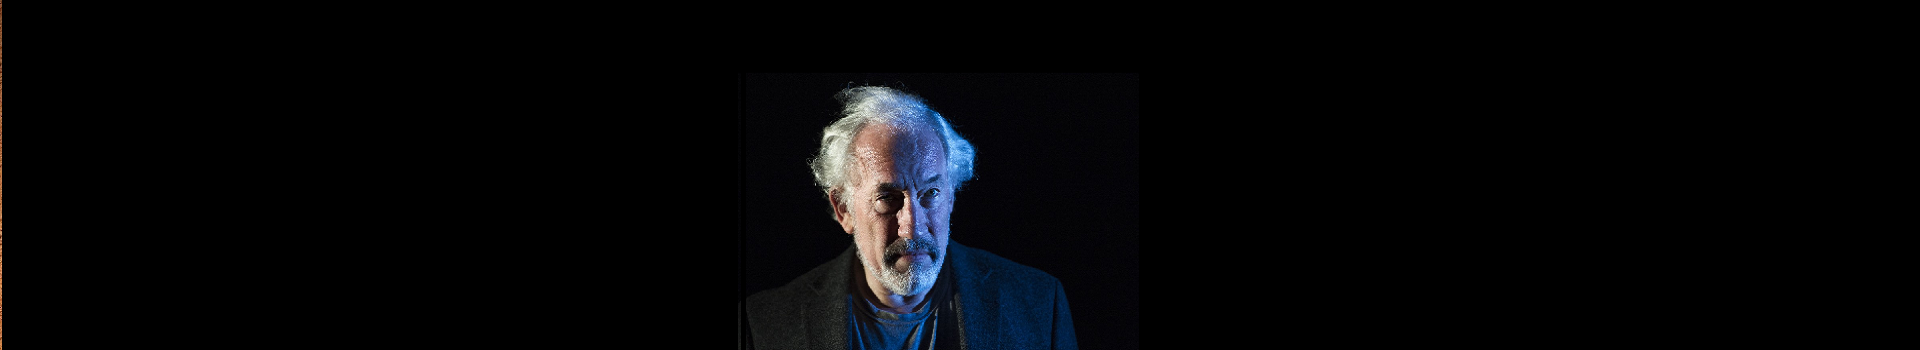 Simon Callow in The Man Jesus banner image